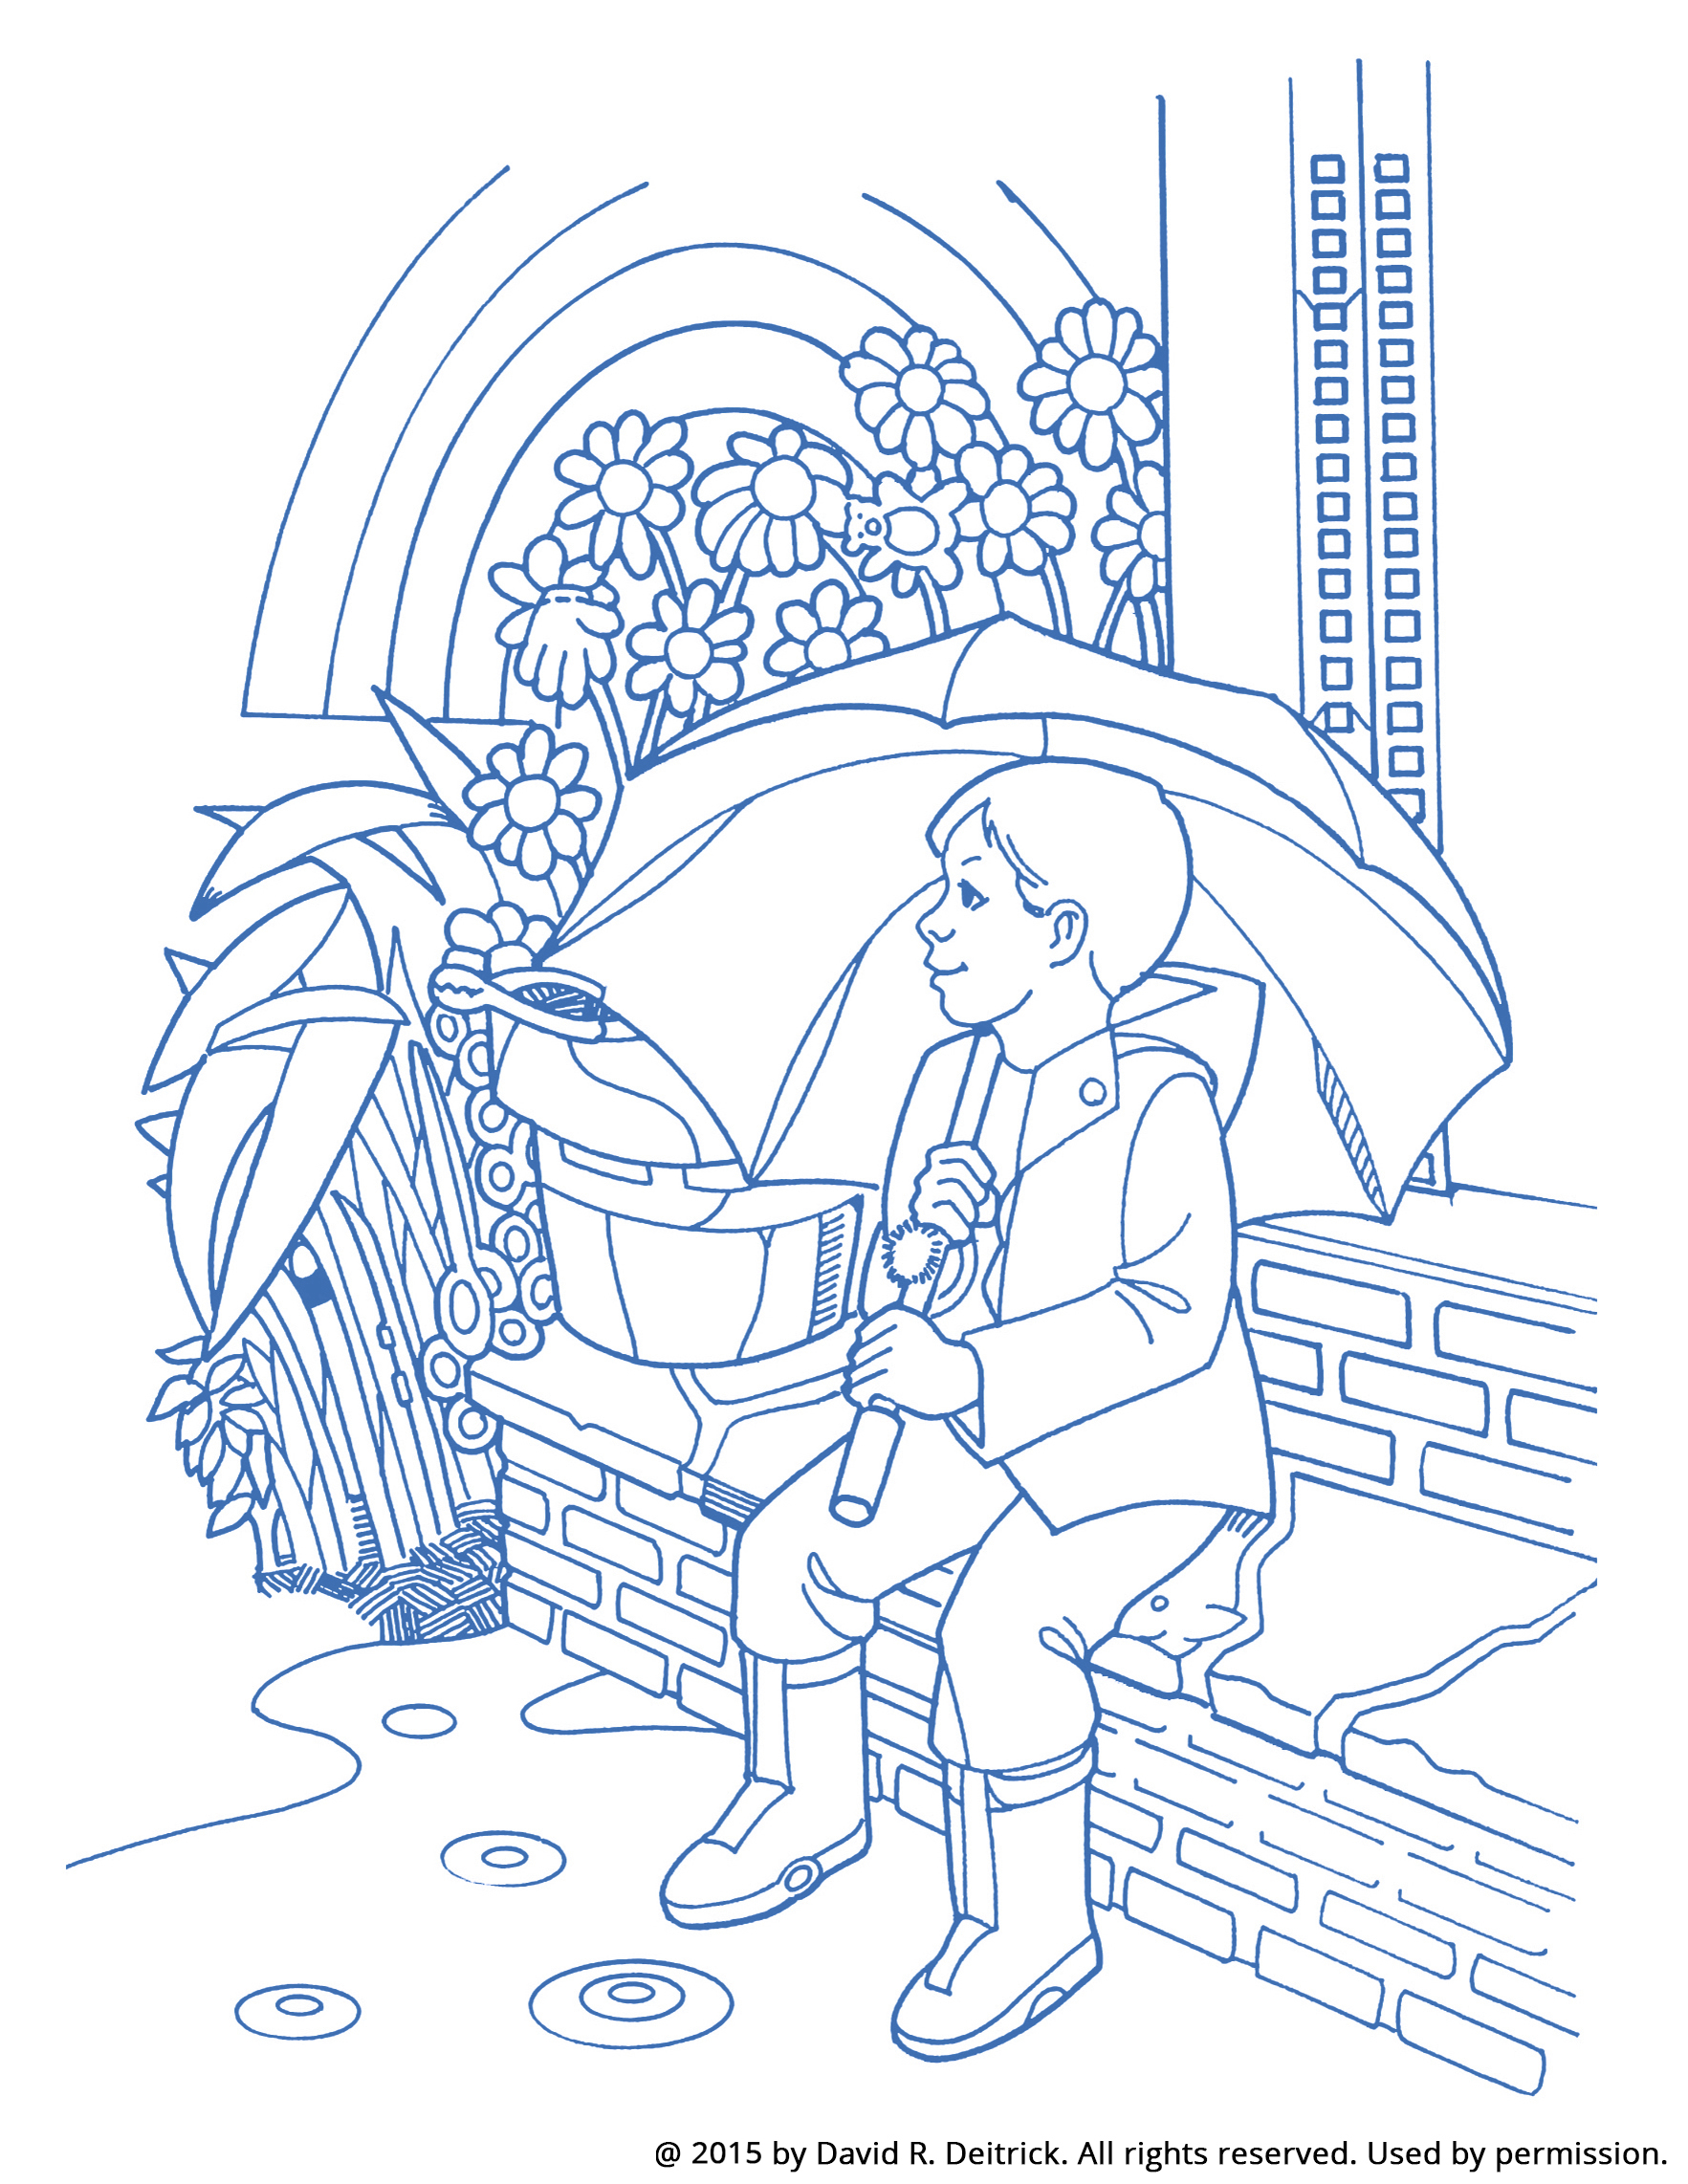 A drawing of a boy sitting outside, with hidden objects drawn into the image.